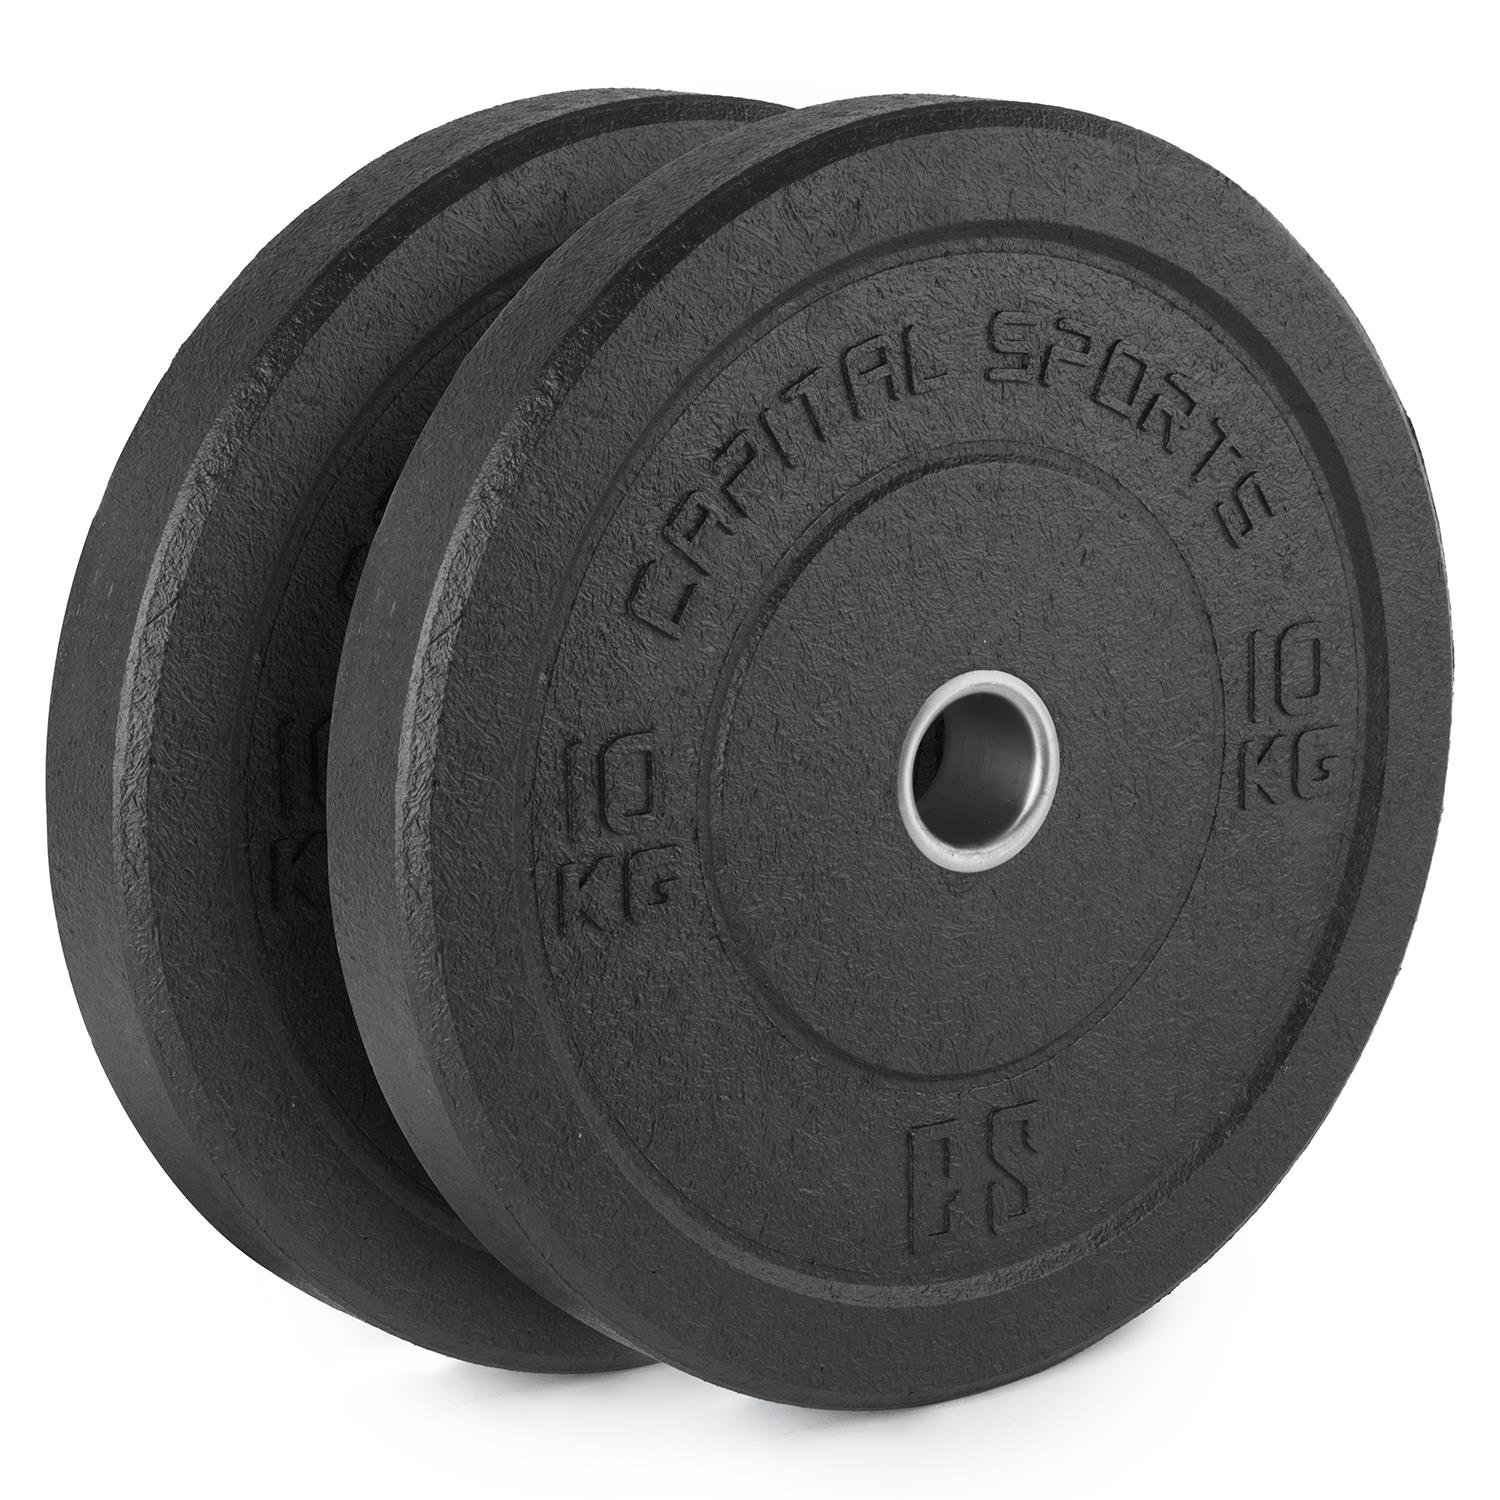 CAPITAL SPORTS Renit - Bumper Plates